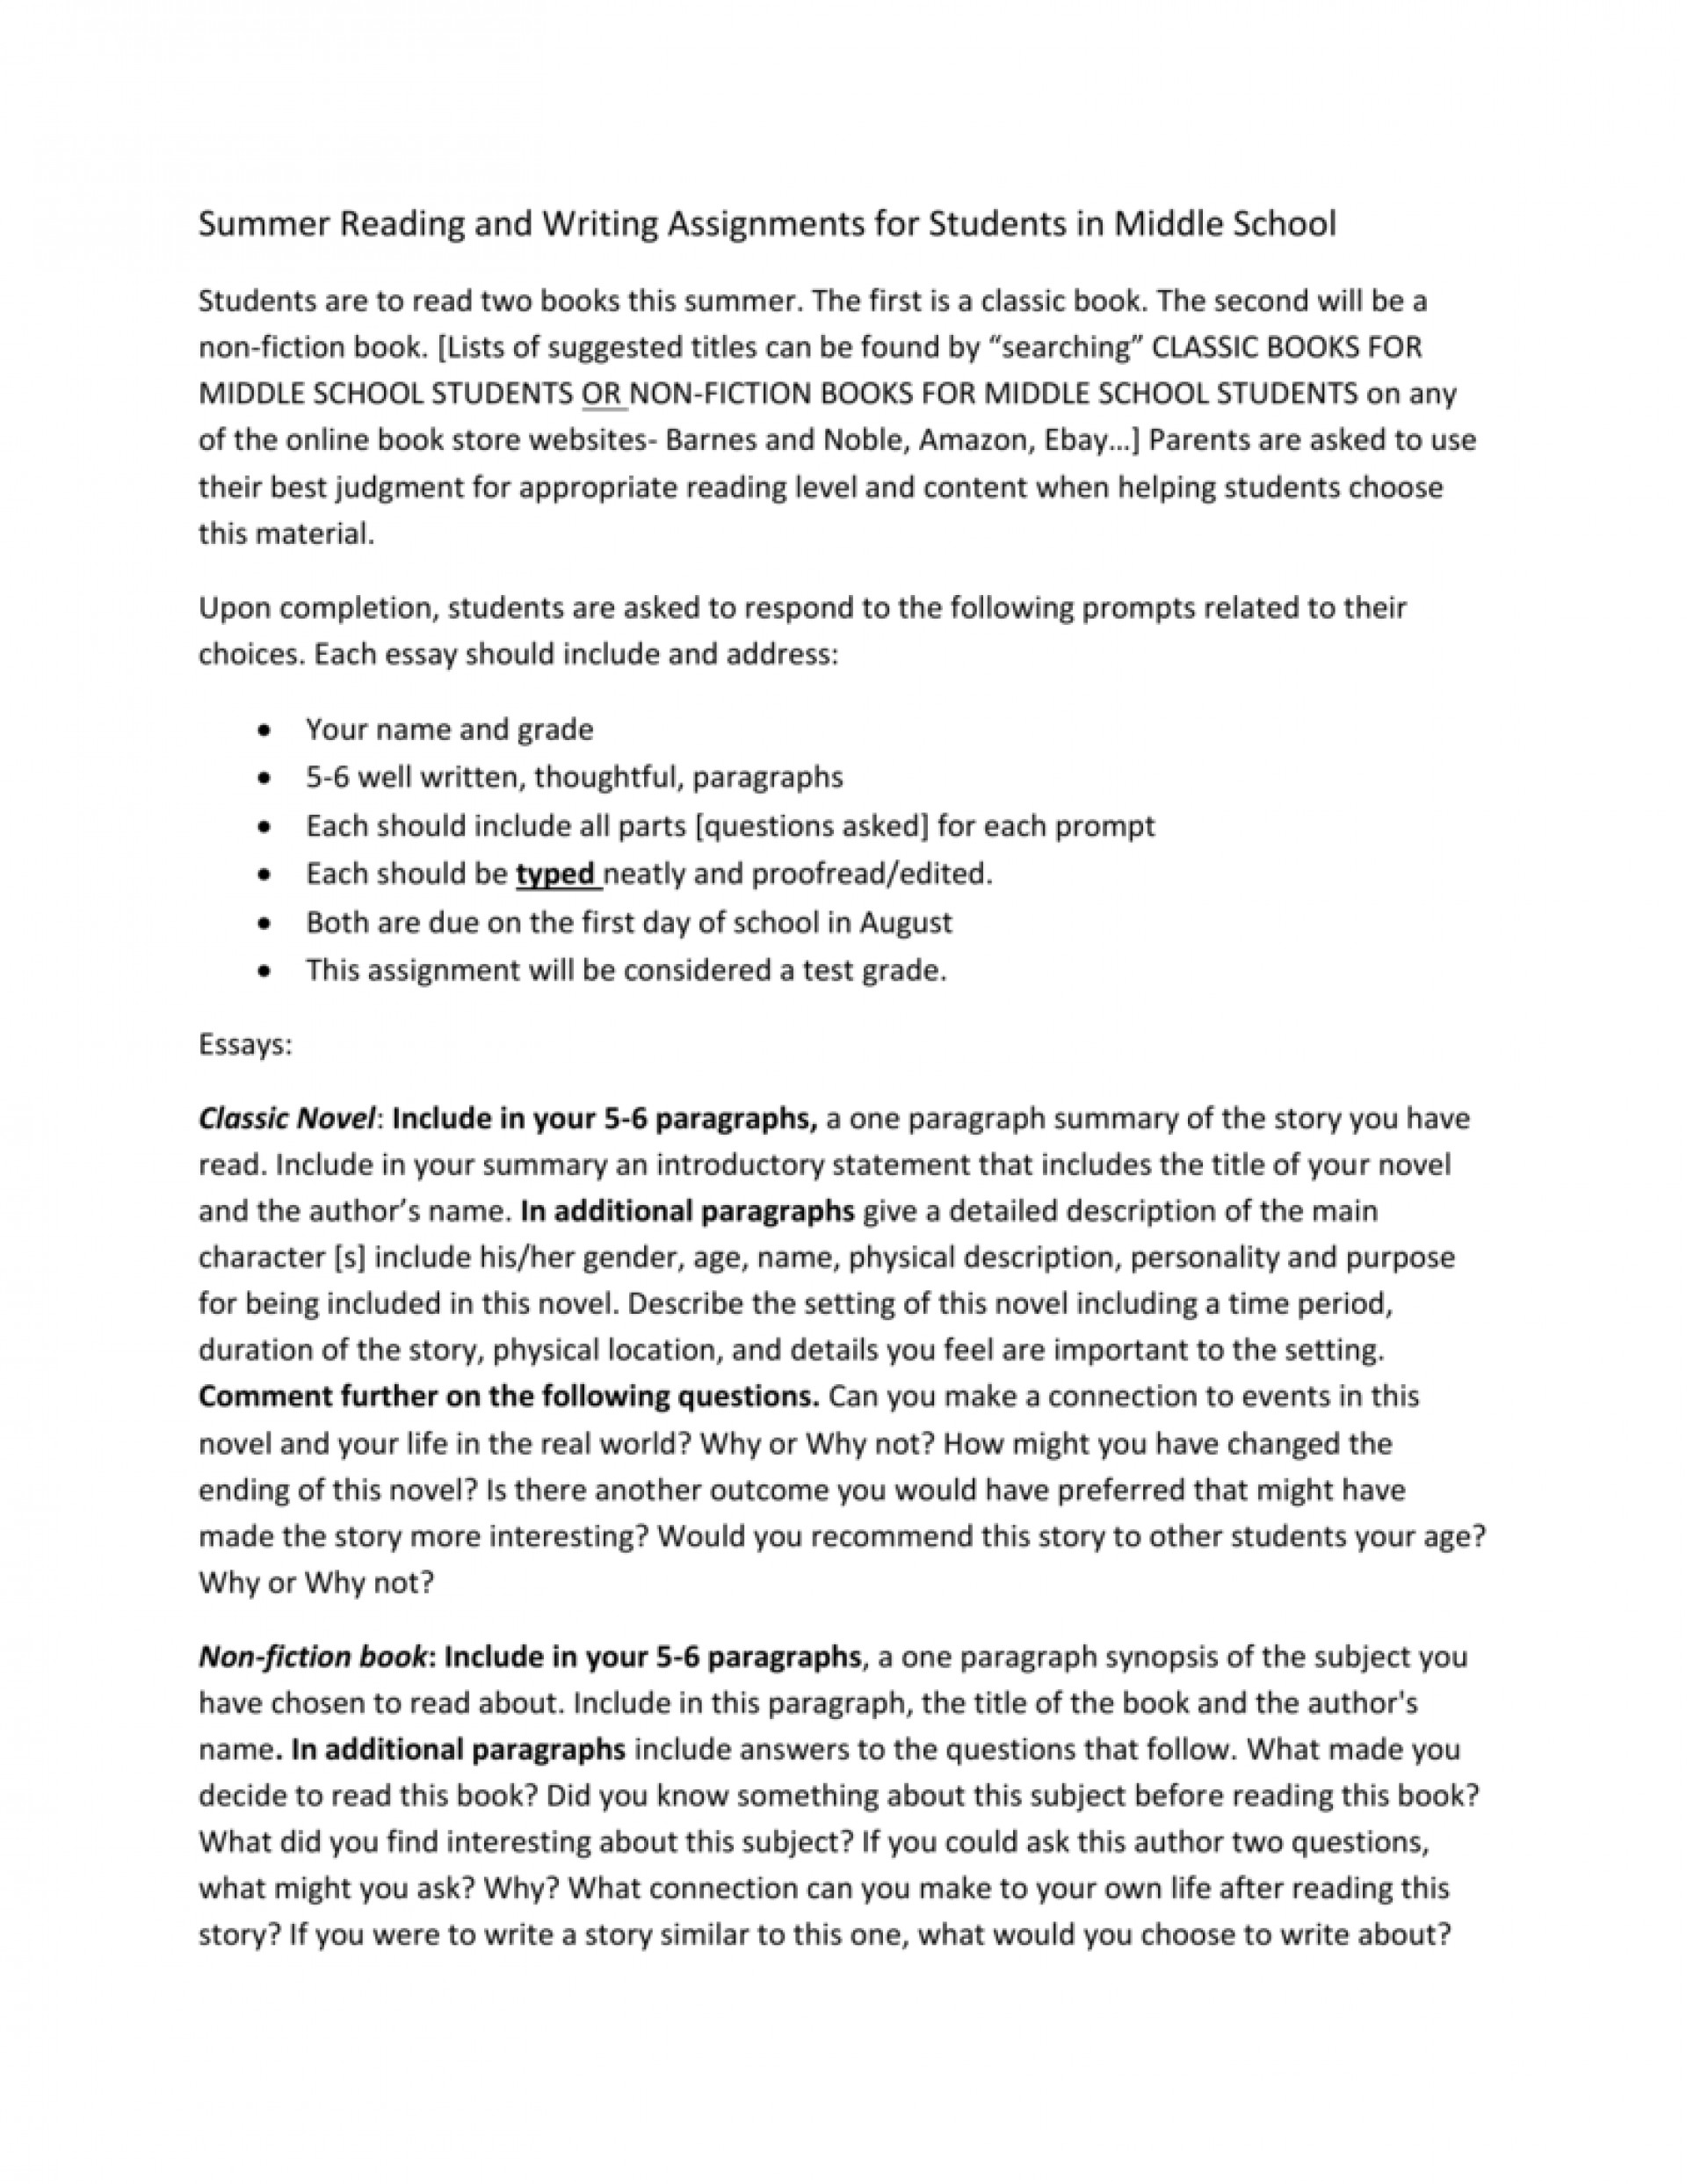 017 Essay Example Paragraph Writing Prompts Middle School 006993769 1 Incredible 5 1920